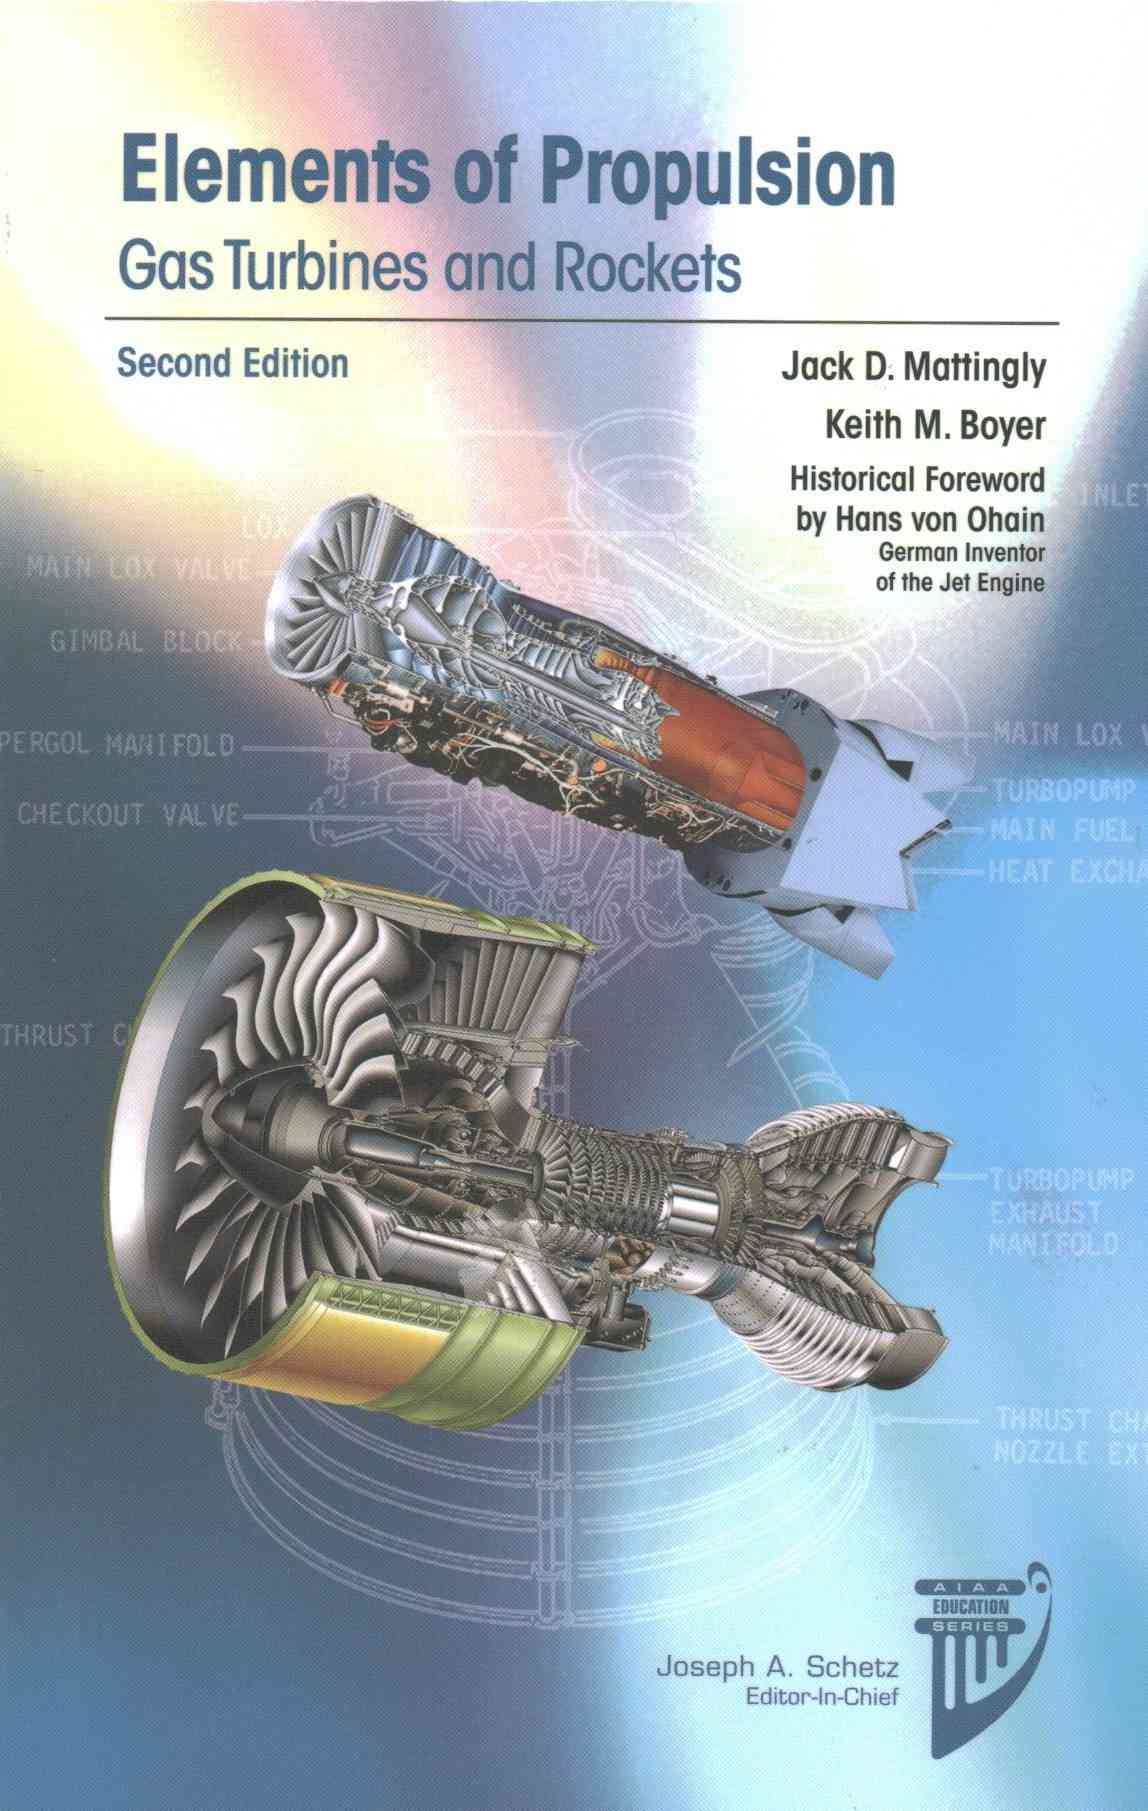 Elements of Propulsion: Gas Turbines and Rockets by Jack D. Mattingly